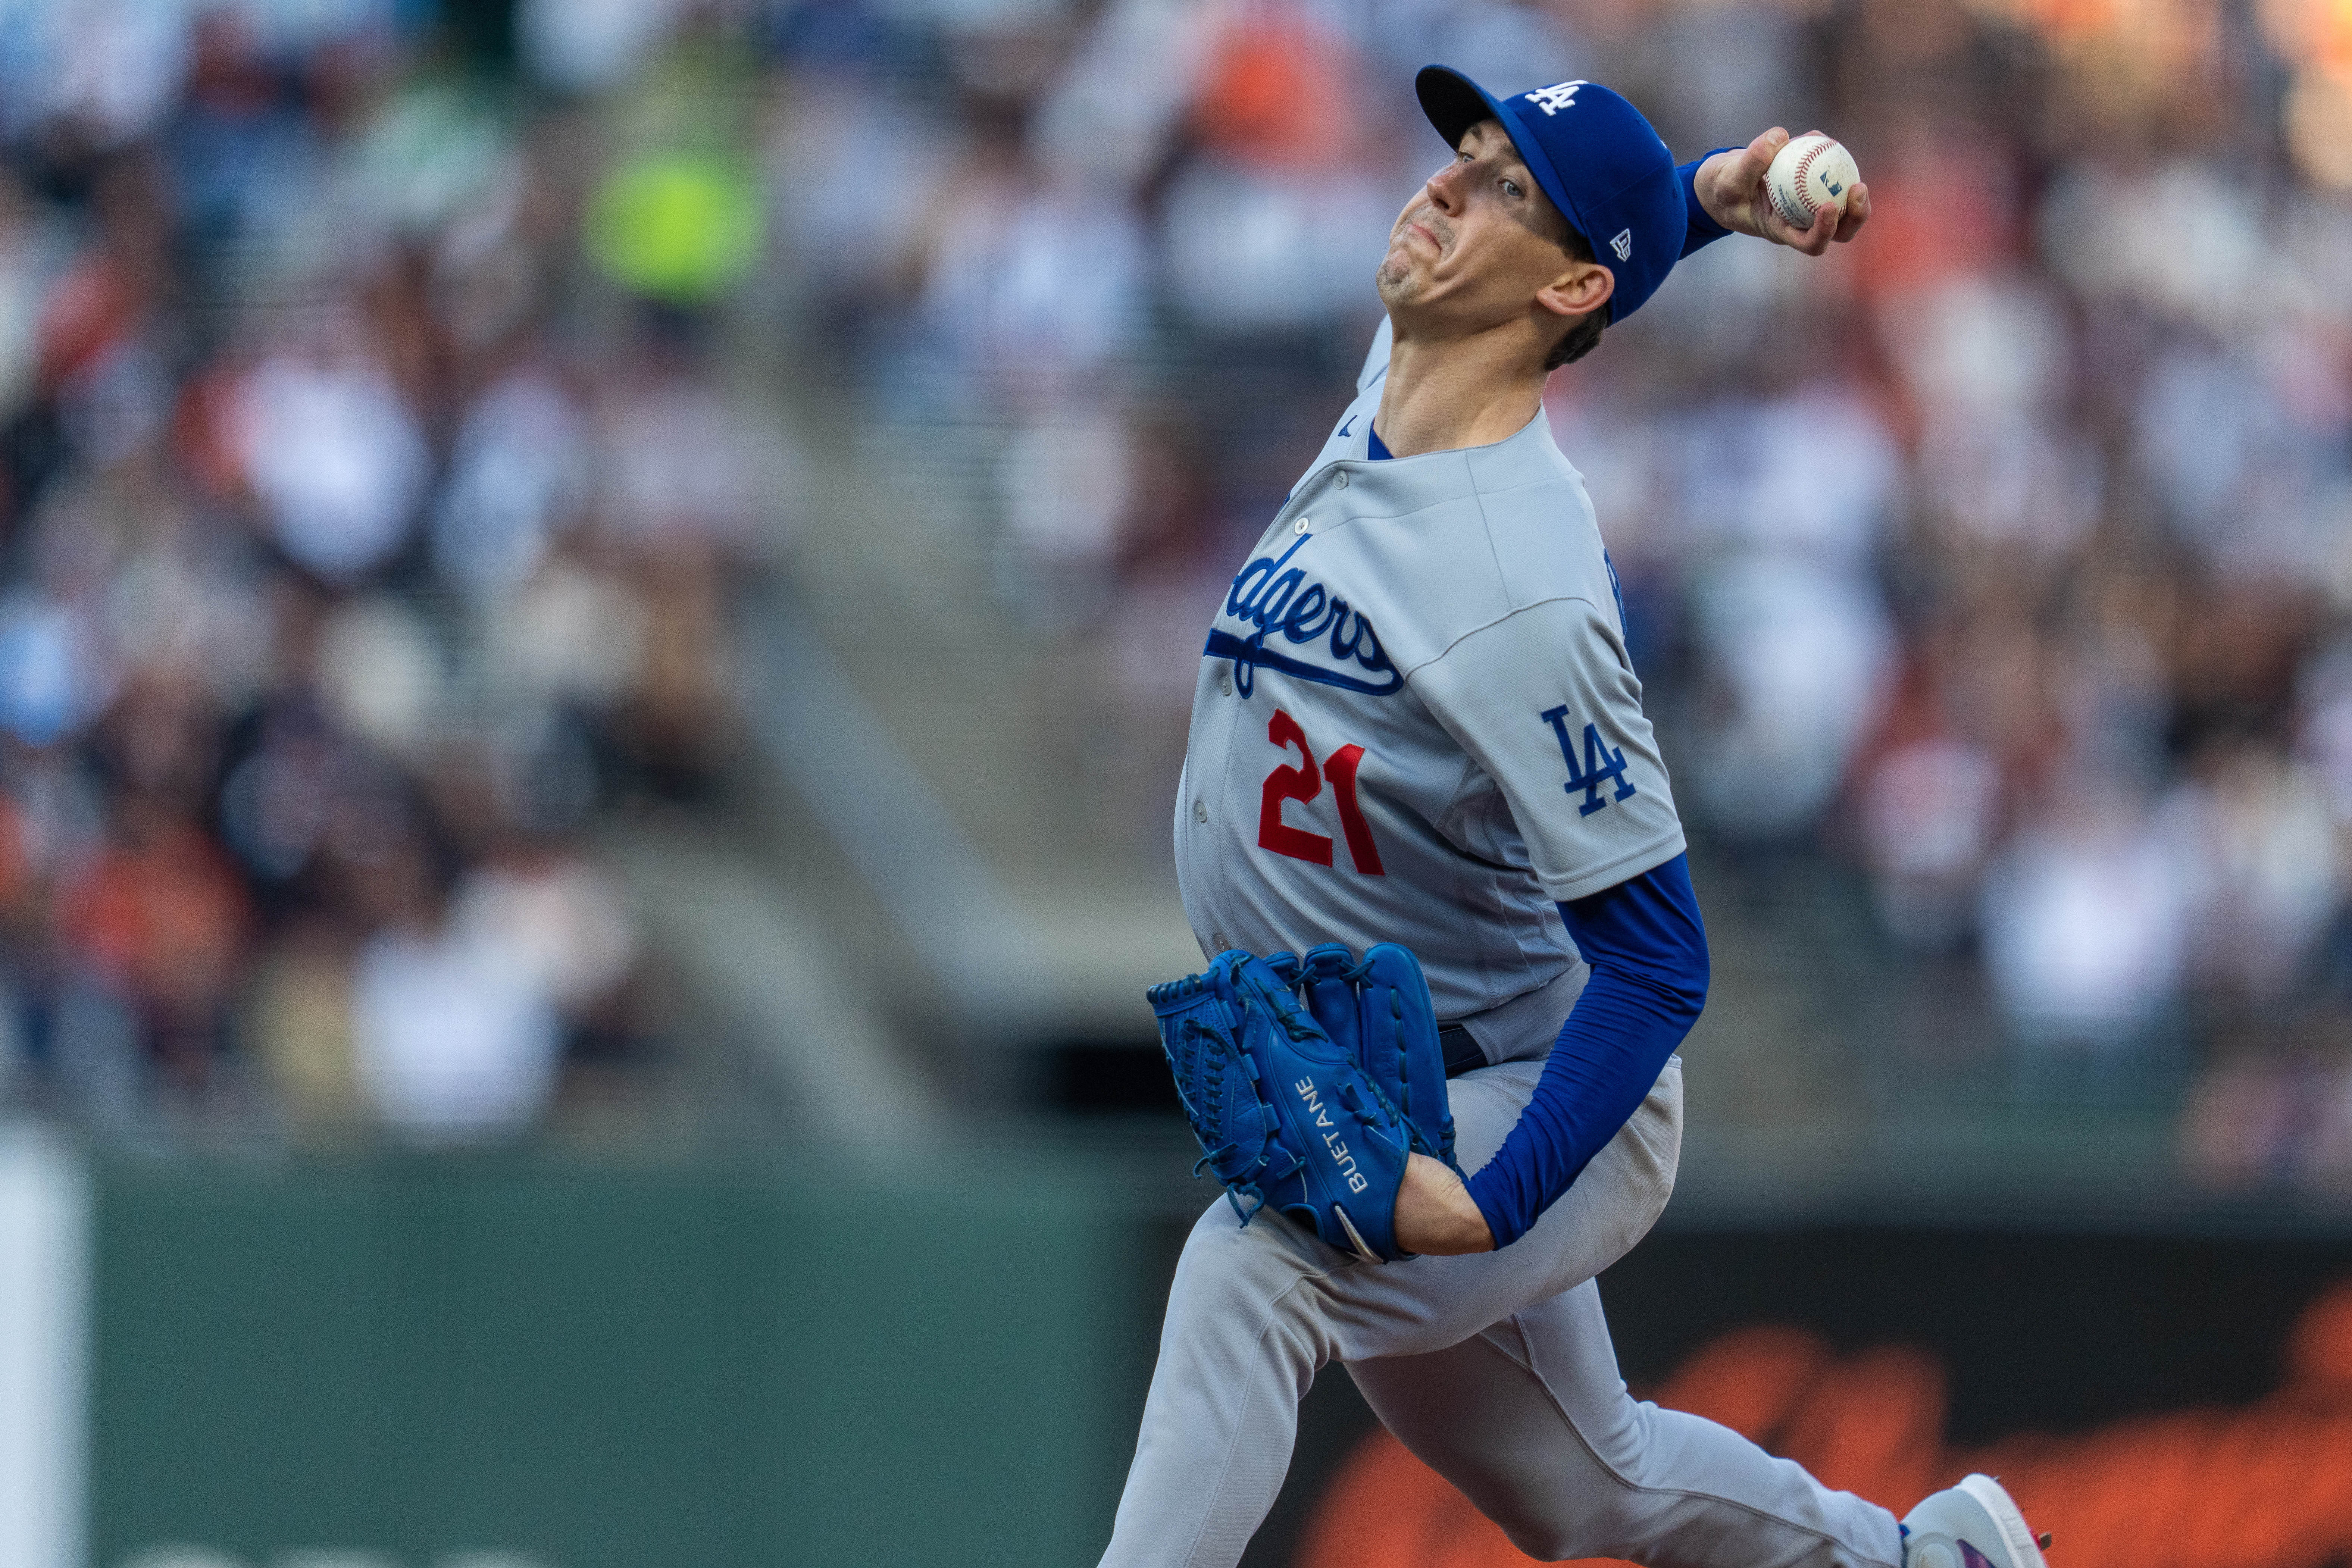 Jul 28, 2021; San Francisco, California, USA;  Los Angeles Dodgers starting pitcher Walker Buehler (21) delivers a pitch during the first inning against the San Francisco Giants at Oracle Park. Mandatory Credit: Neville E. Guard-USA TODAY Sports